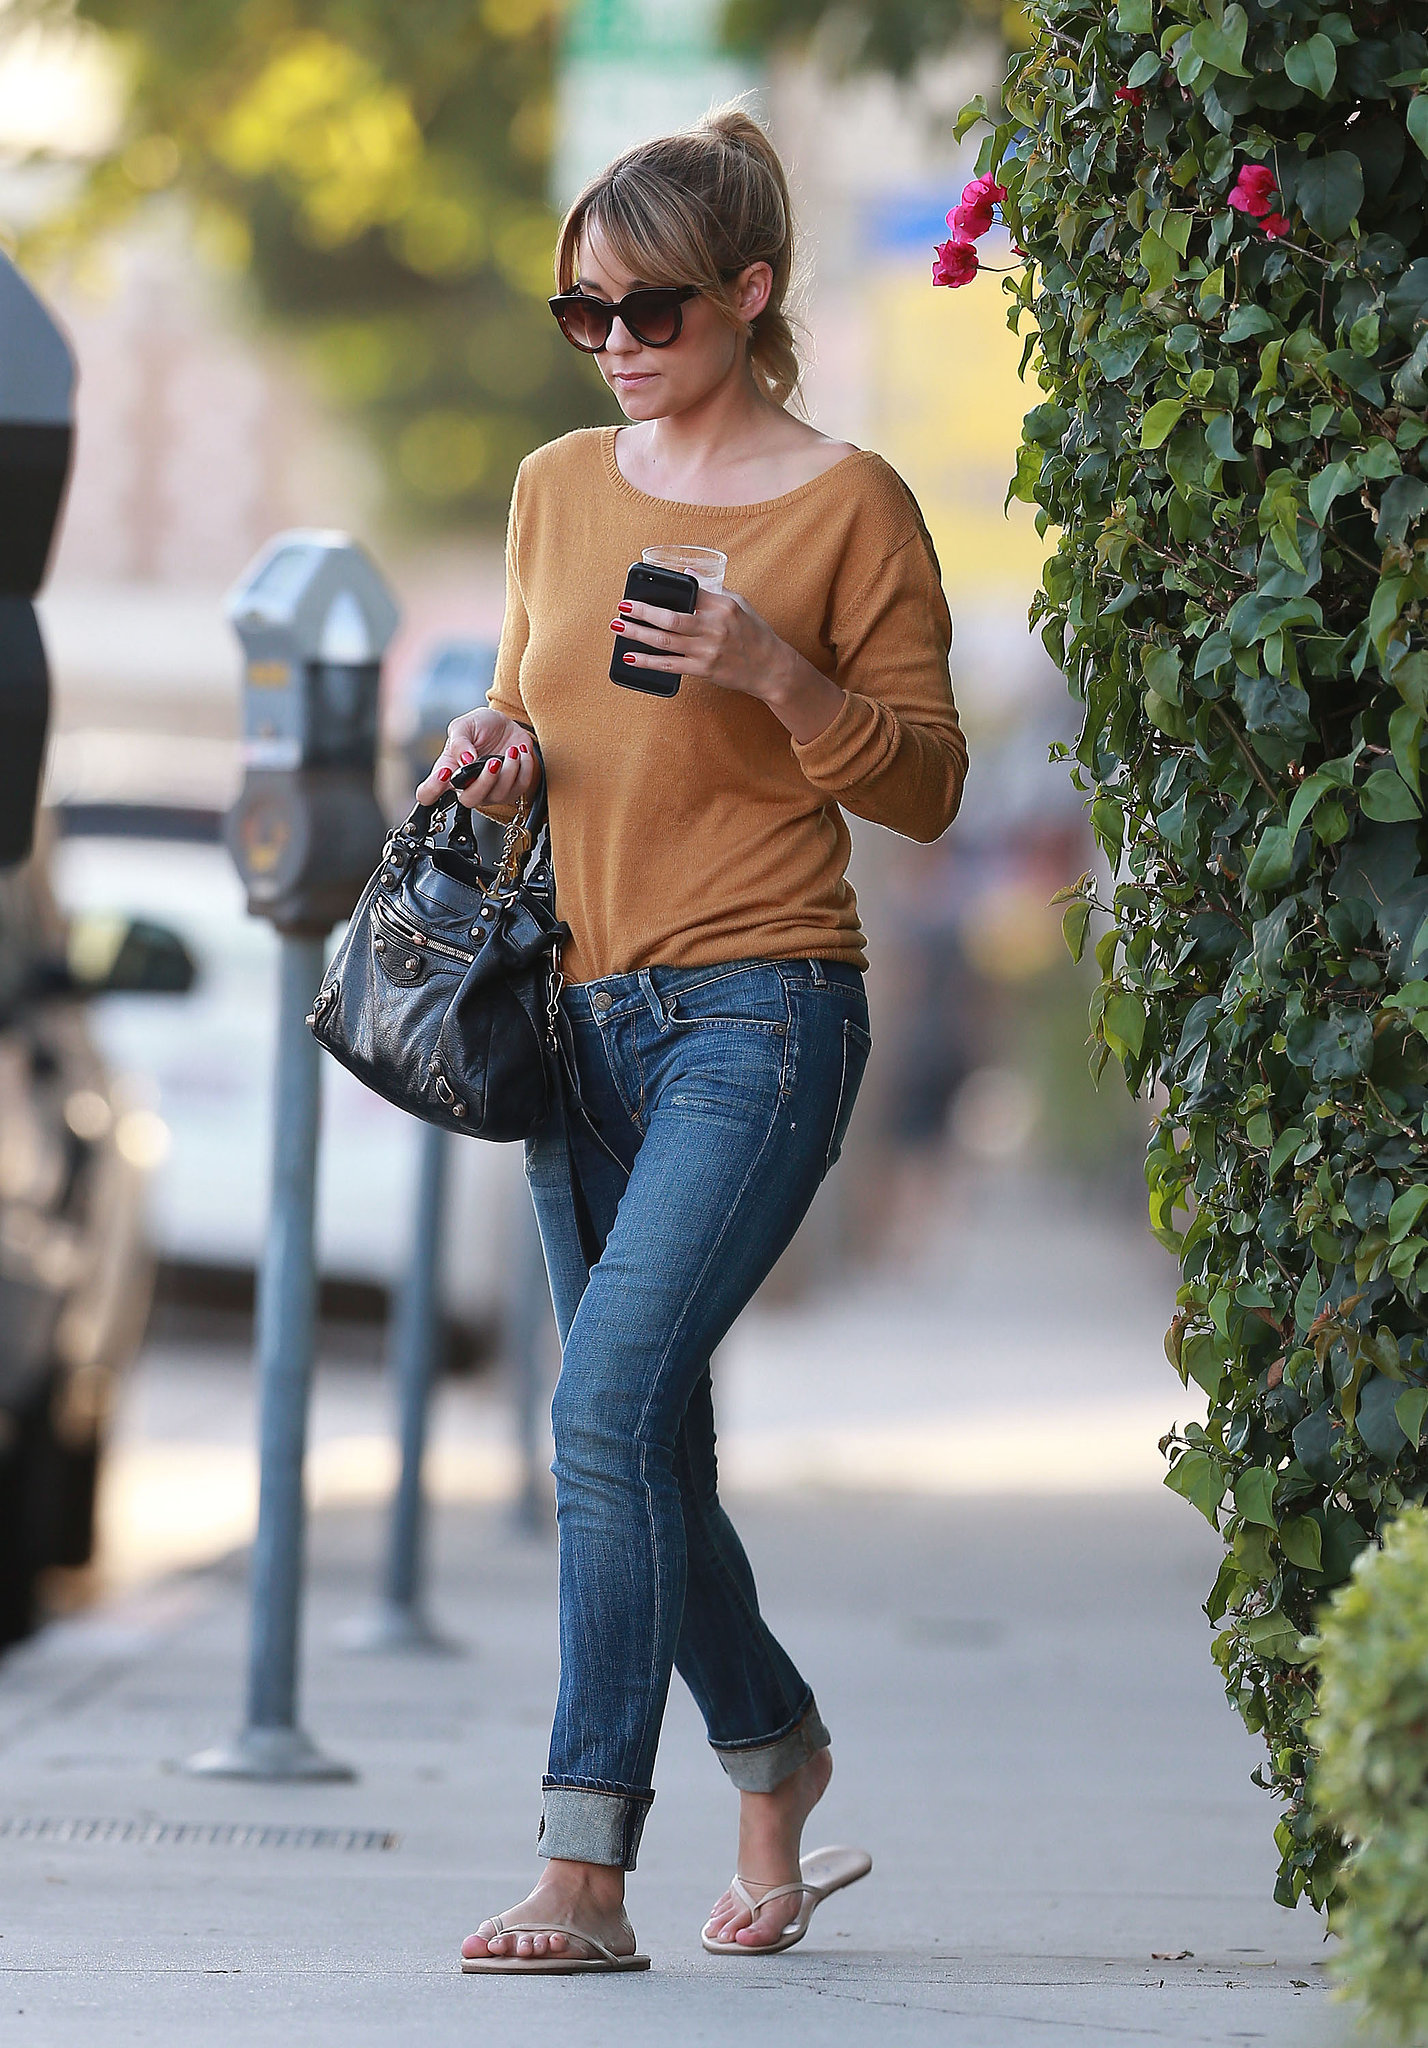 Looking minimalist-chic, Lauren styled her cuffed denim with an off-the-shoulder camel sweater and nude flip flops in West Hollywood. Lesson from Lauren: sometimes it's good to get back to basics.